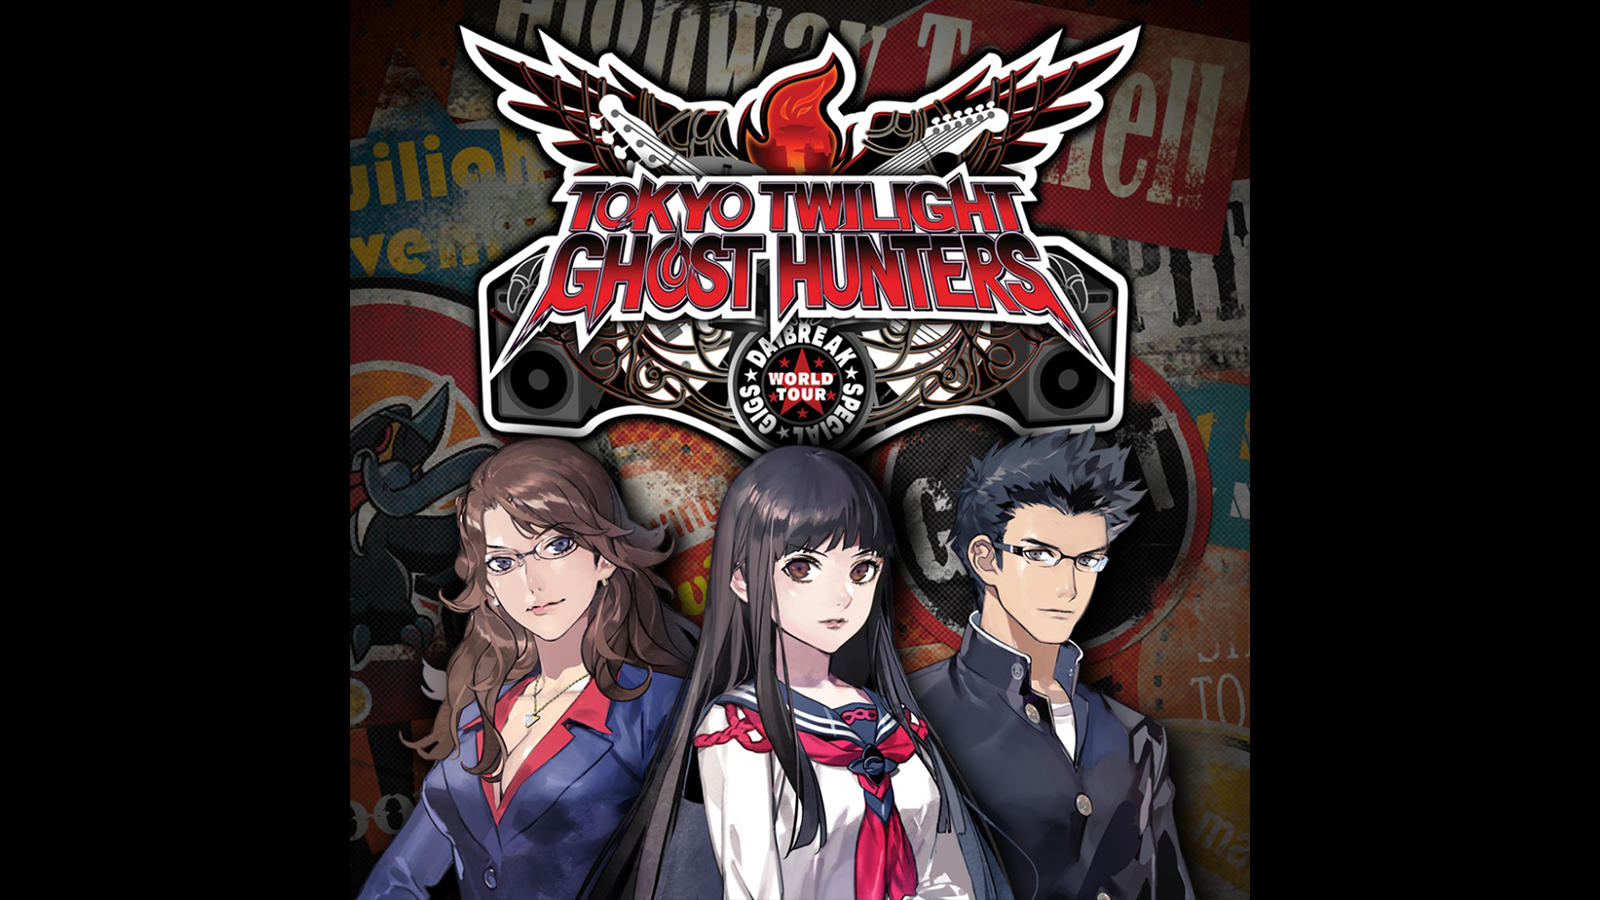 Tokyo Twilight Ghost Hunters Daybreak: Special Gigs Game